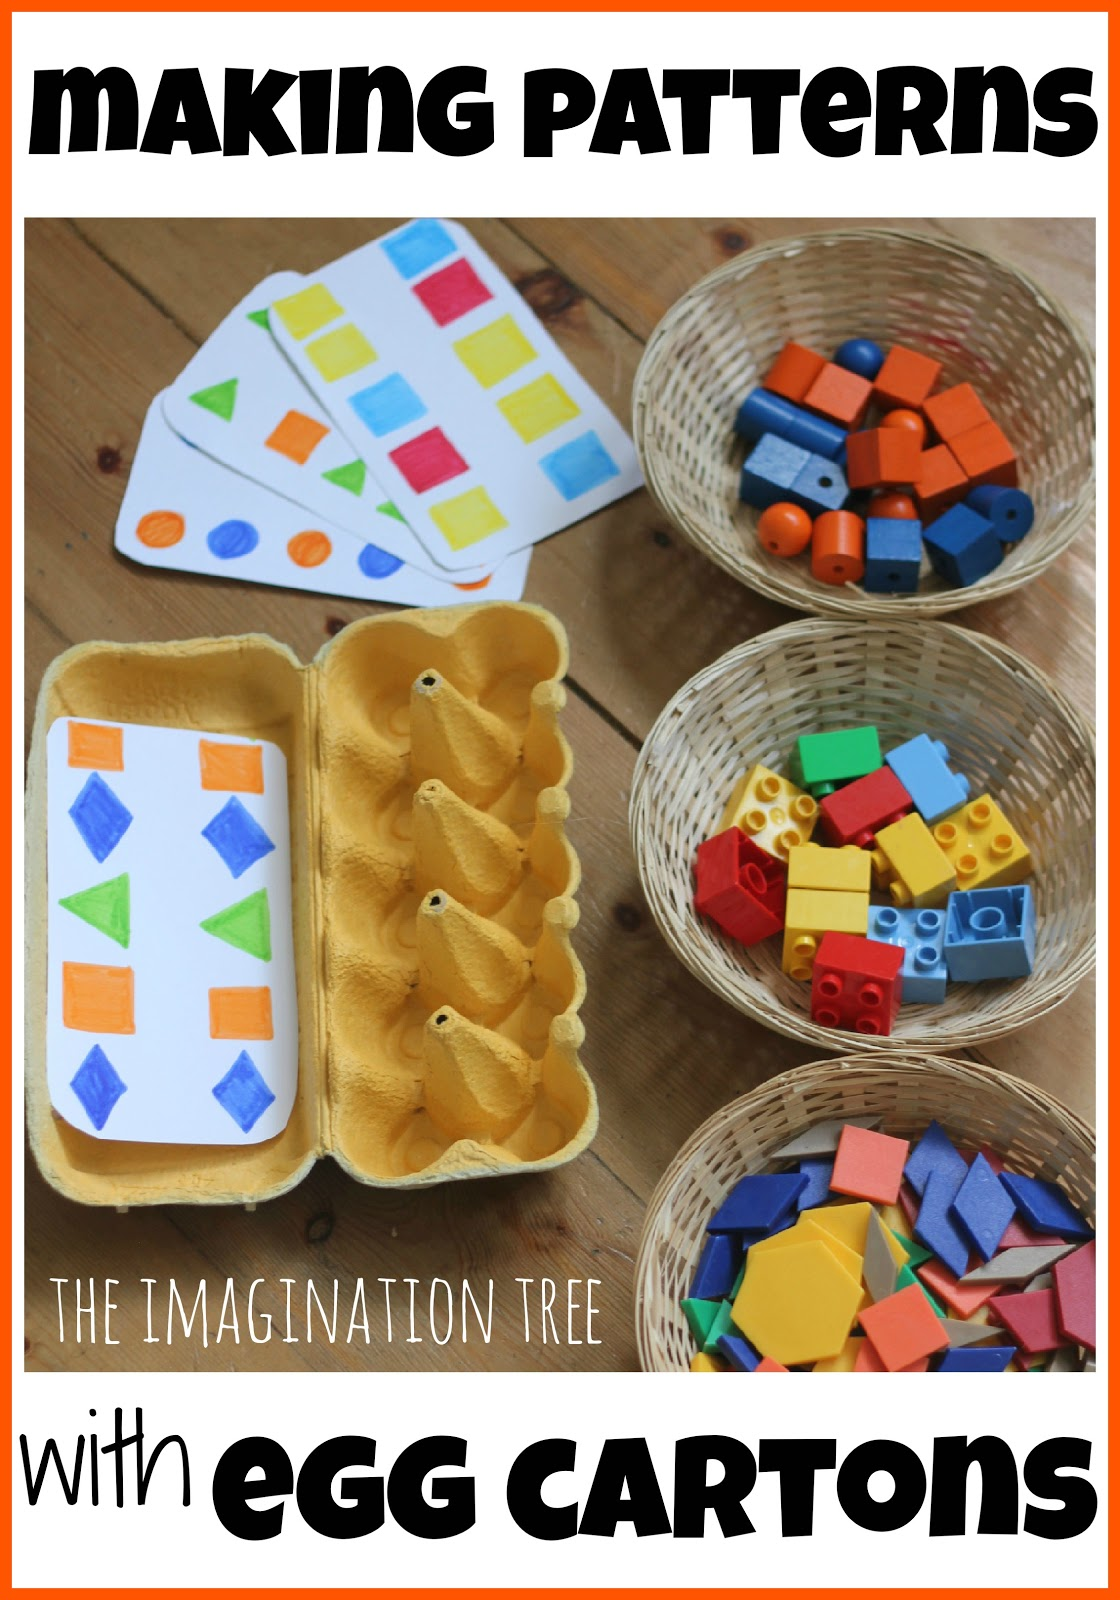 Making Patterns with Lego and Egg Cartons  The